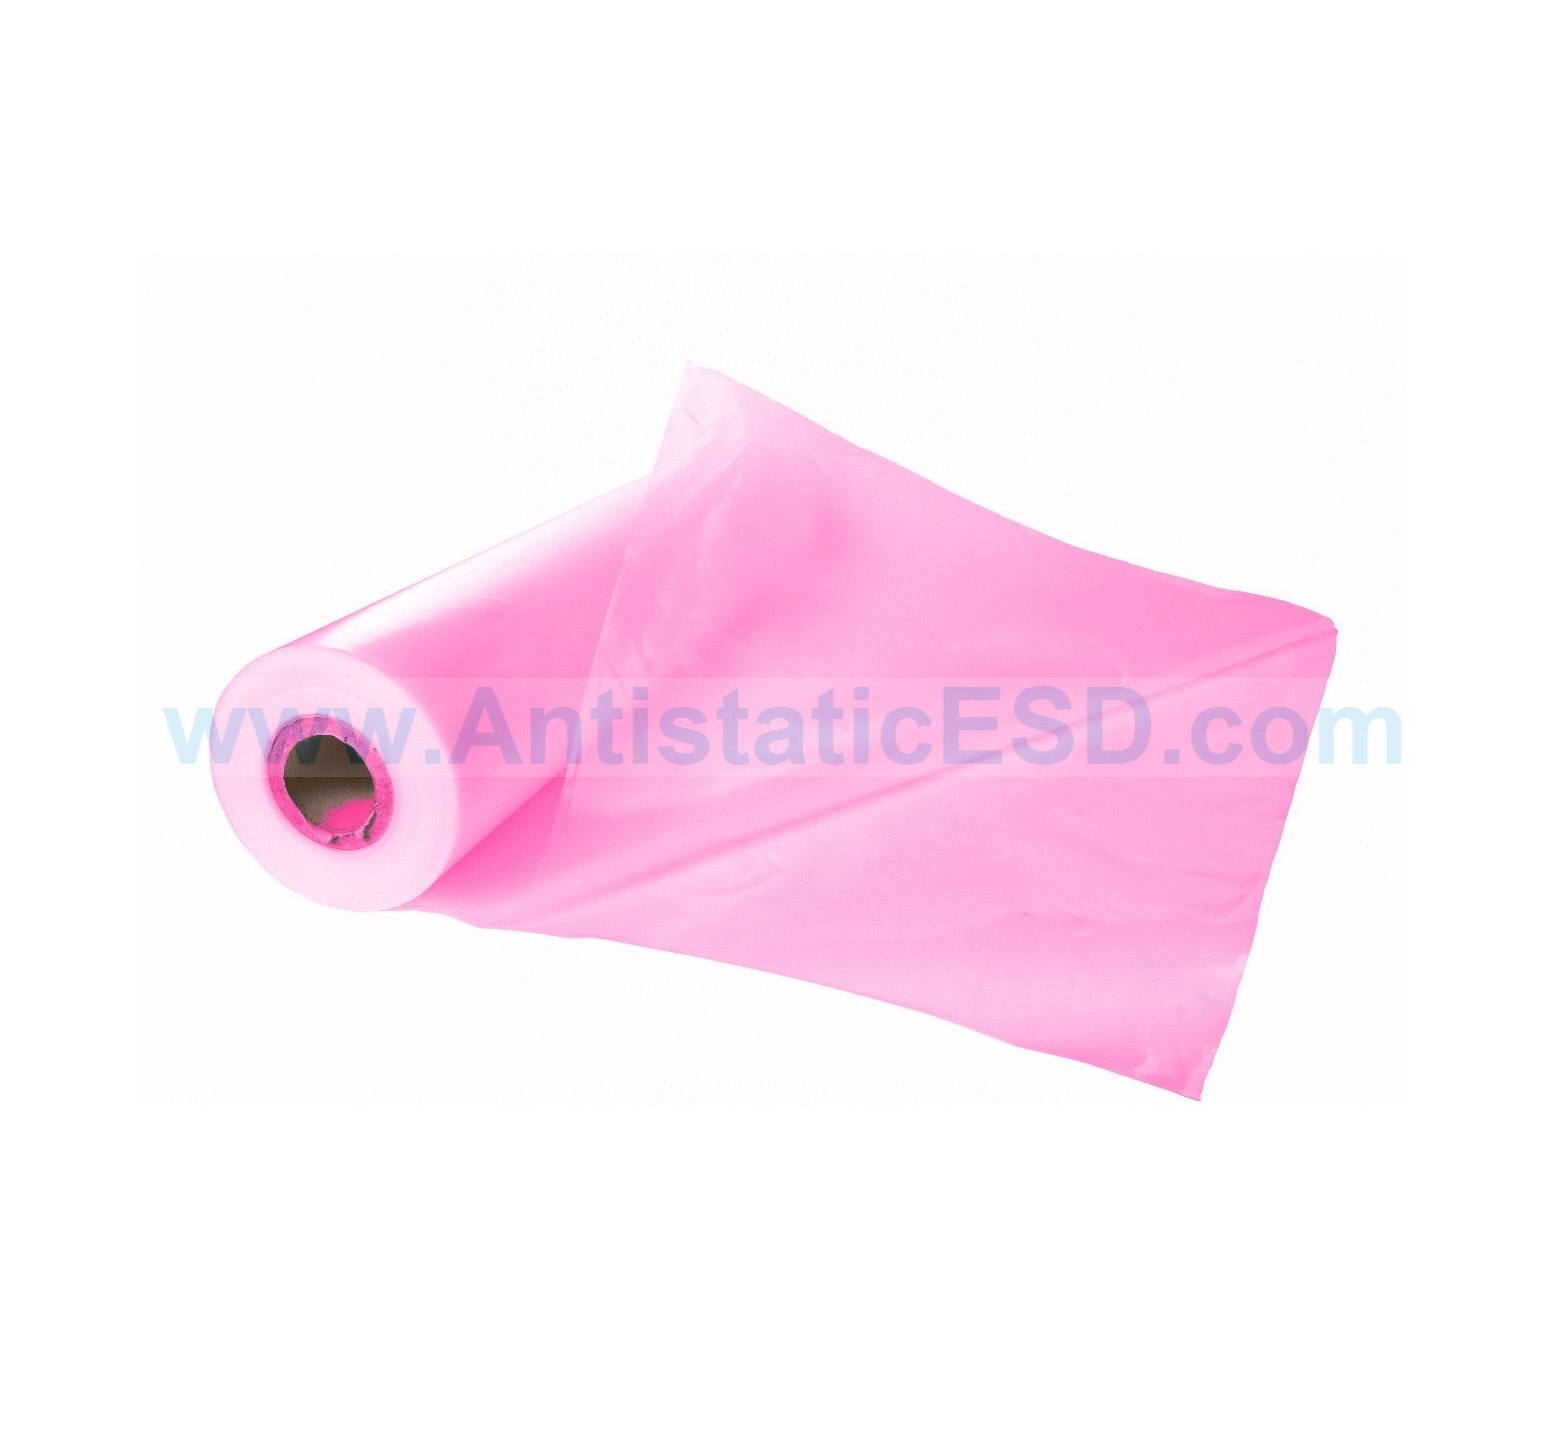 Anti Static Products : Pink anti static centrefold sheeting esd